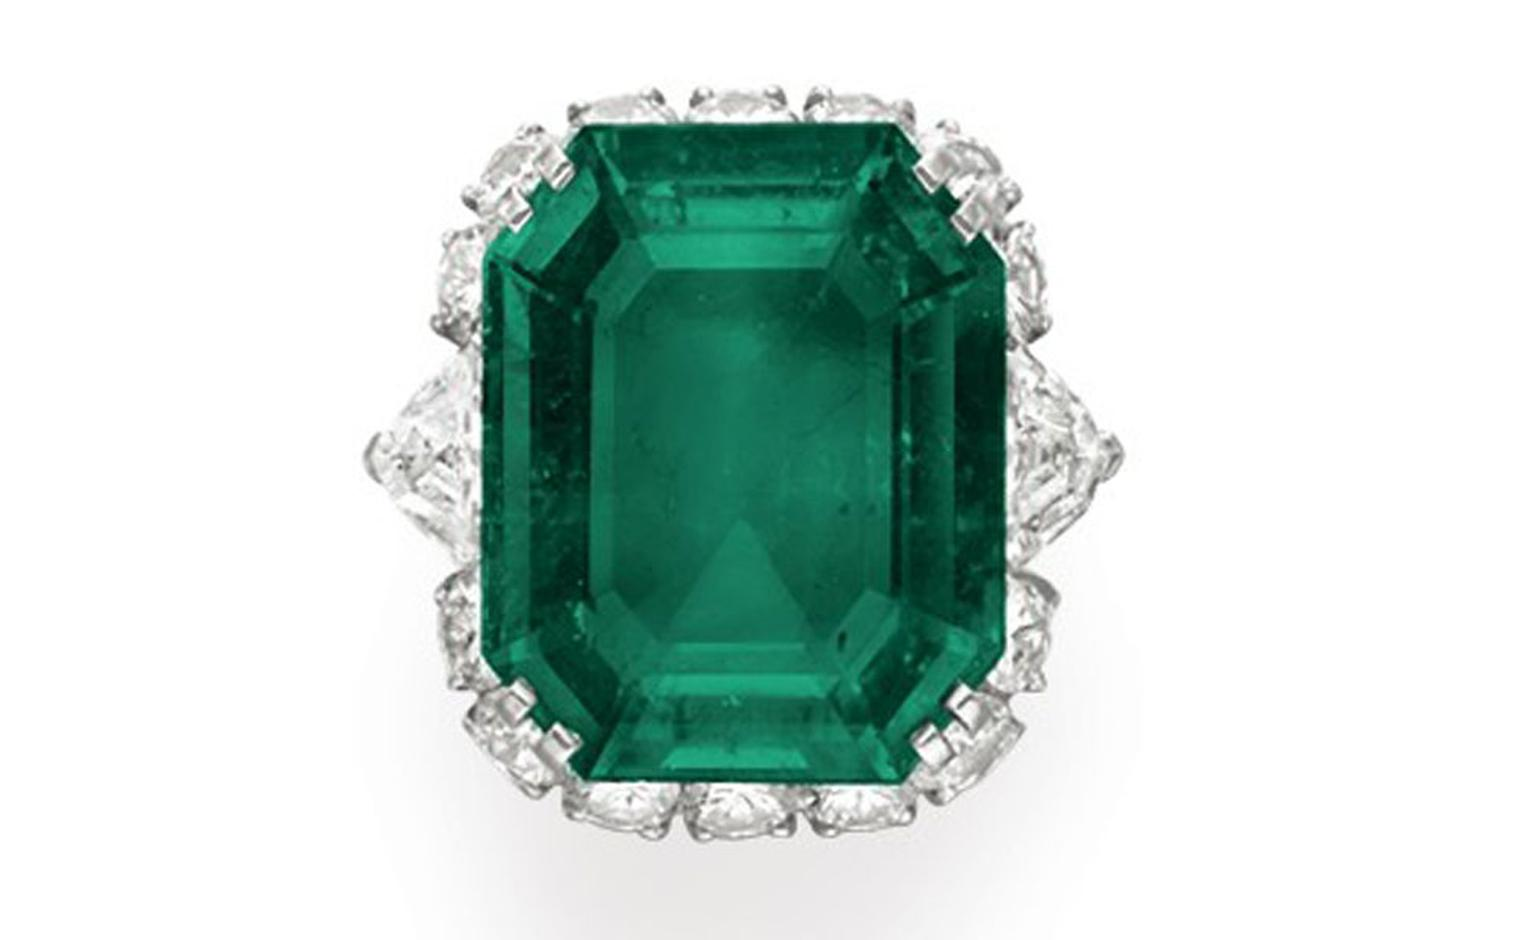 Bulgari Emerald Suite Ring, estimate: $600,000 -800,000